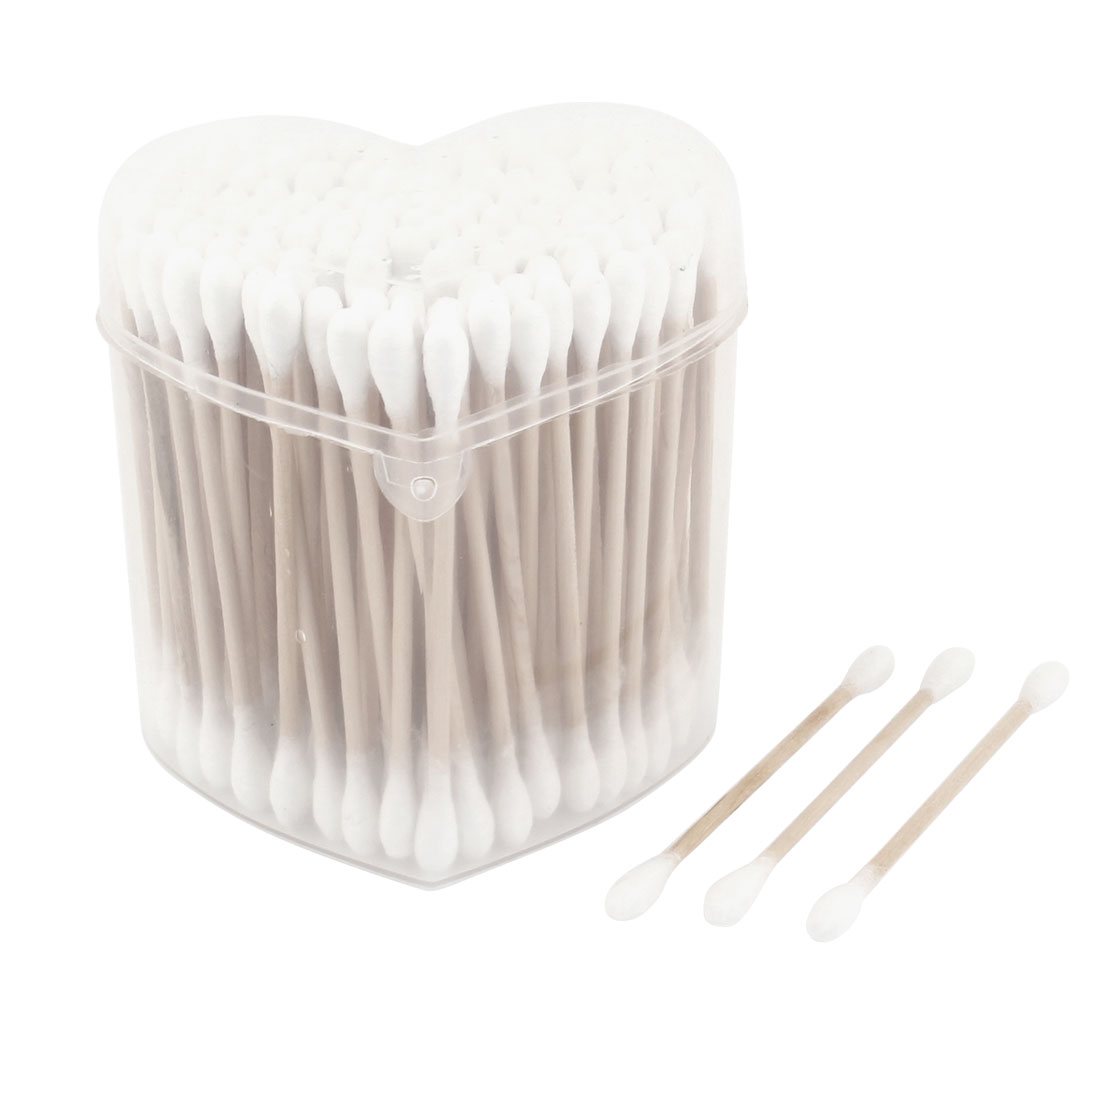 100 Pcs Double Tipped Stick Cosmetic Make Up Cotton Swabs Buds